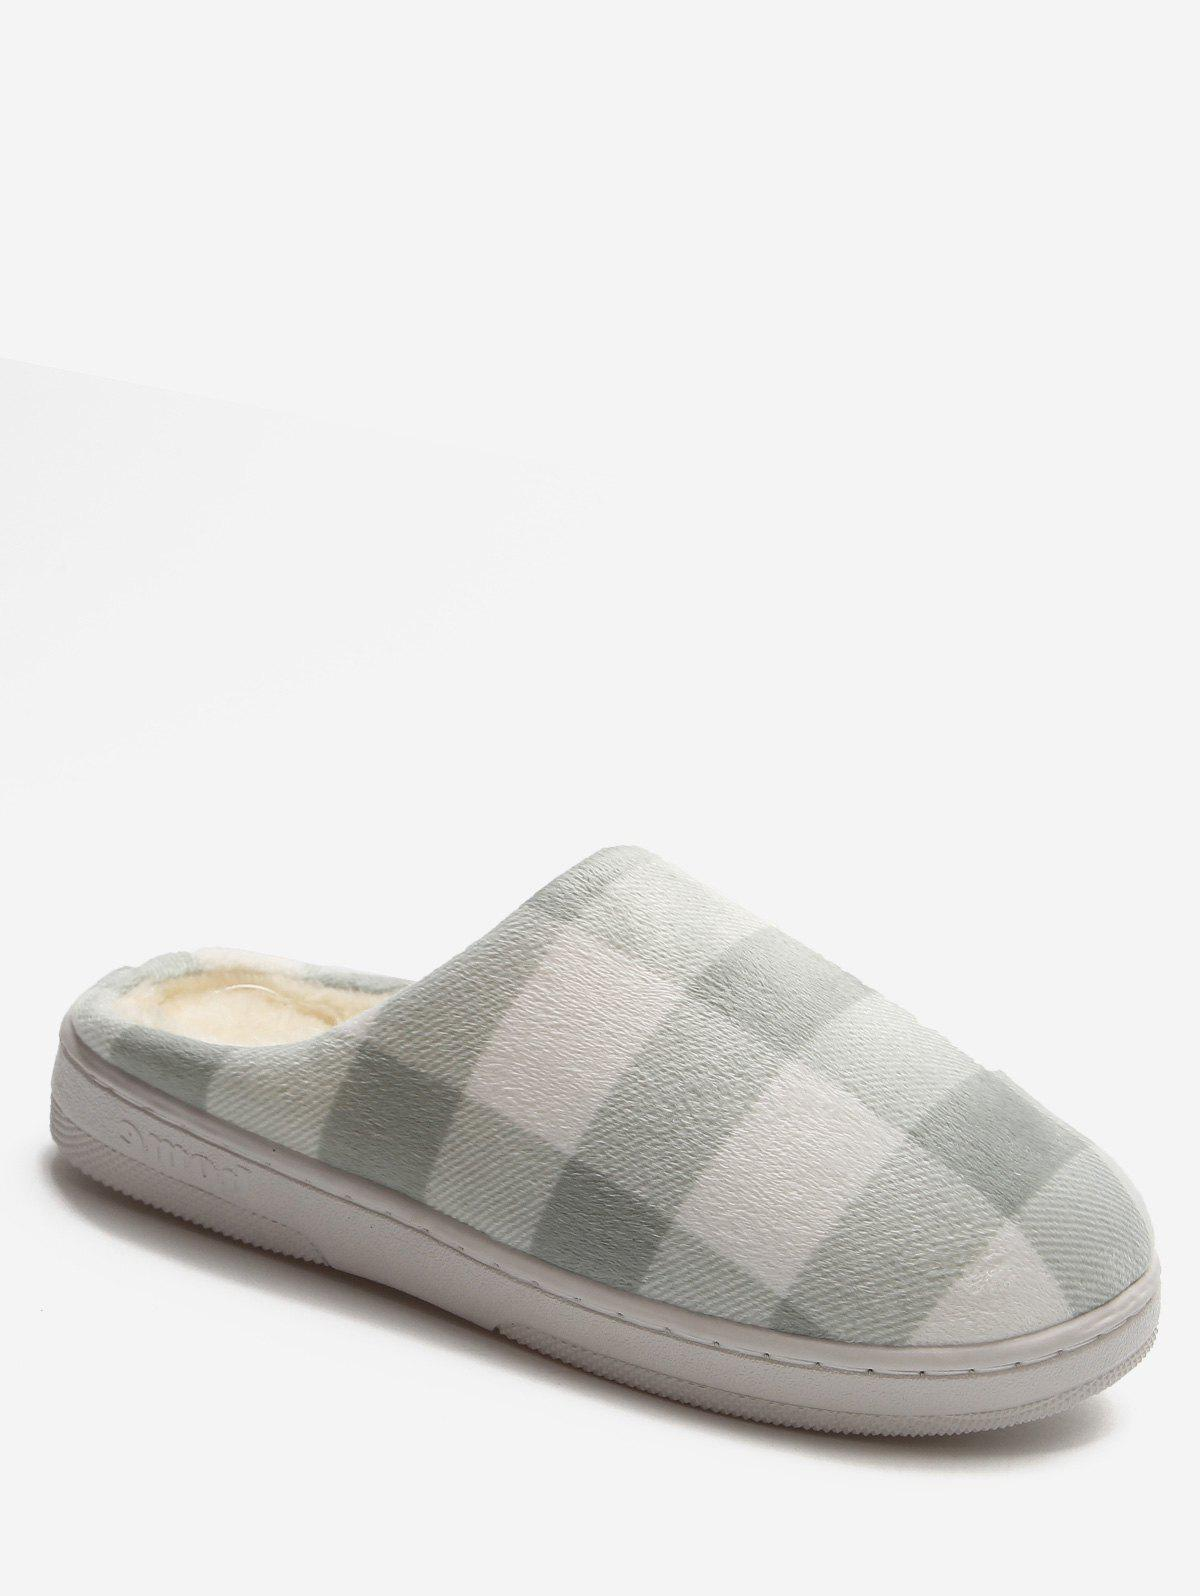 Affordable Plaid Cotton Indoor Warm Slippers